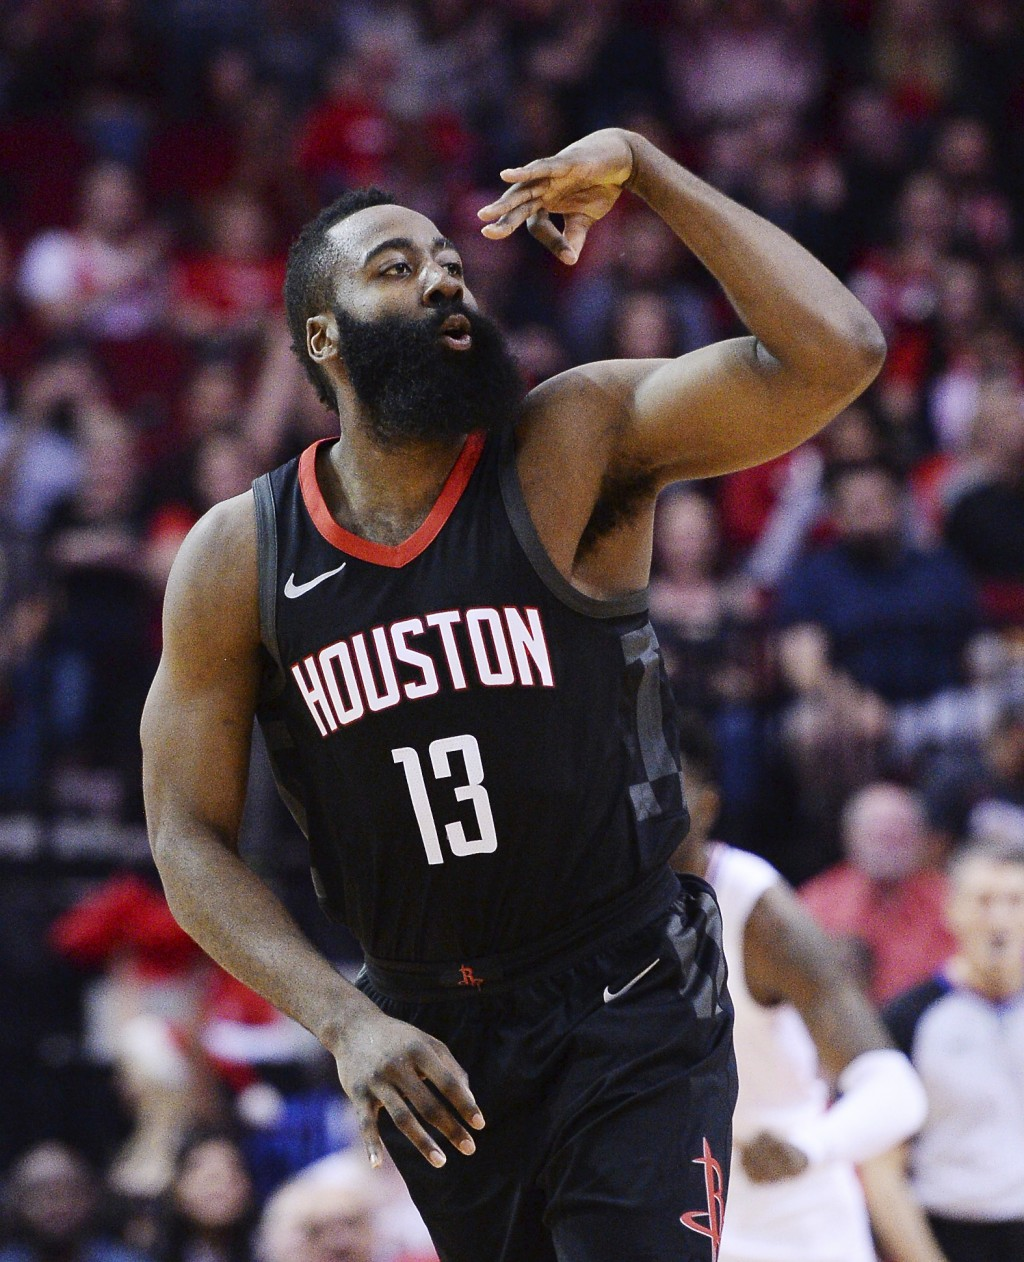 Houston Rockets guard James Harden celebrates a 3-point shot against the Los Angeles Clipers early in an NBA basketball game Friday, Dec. 22, 2017, in...